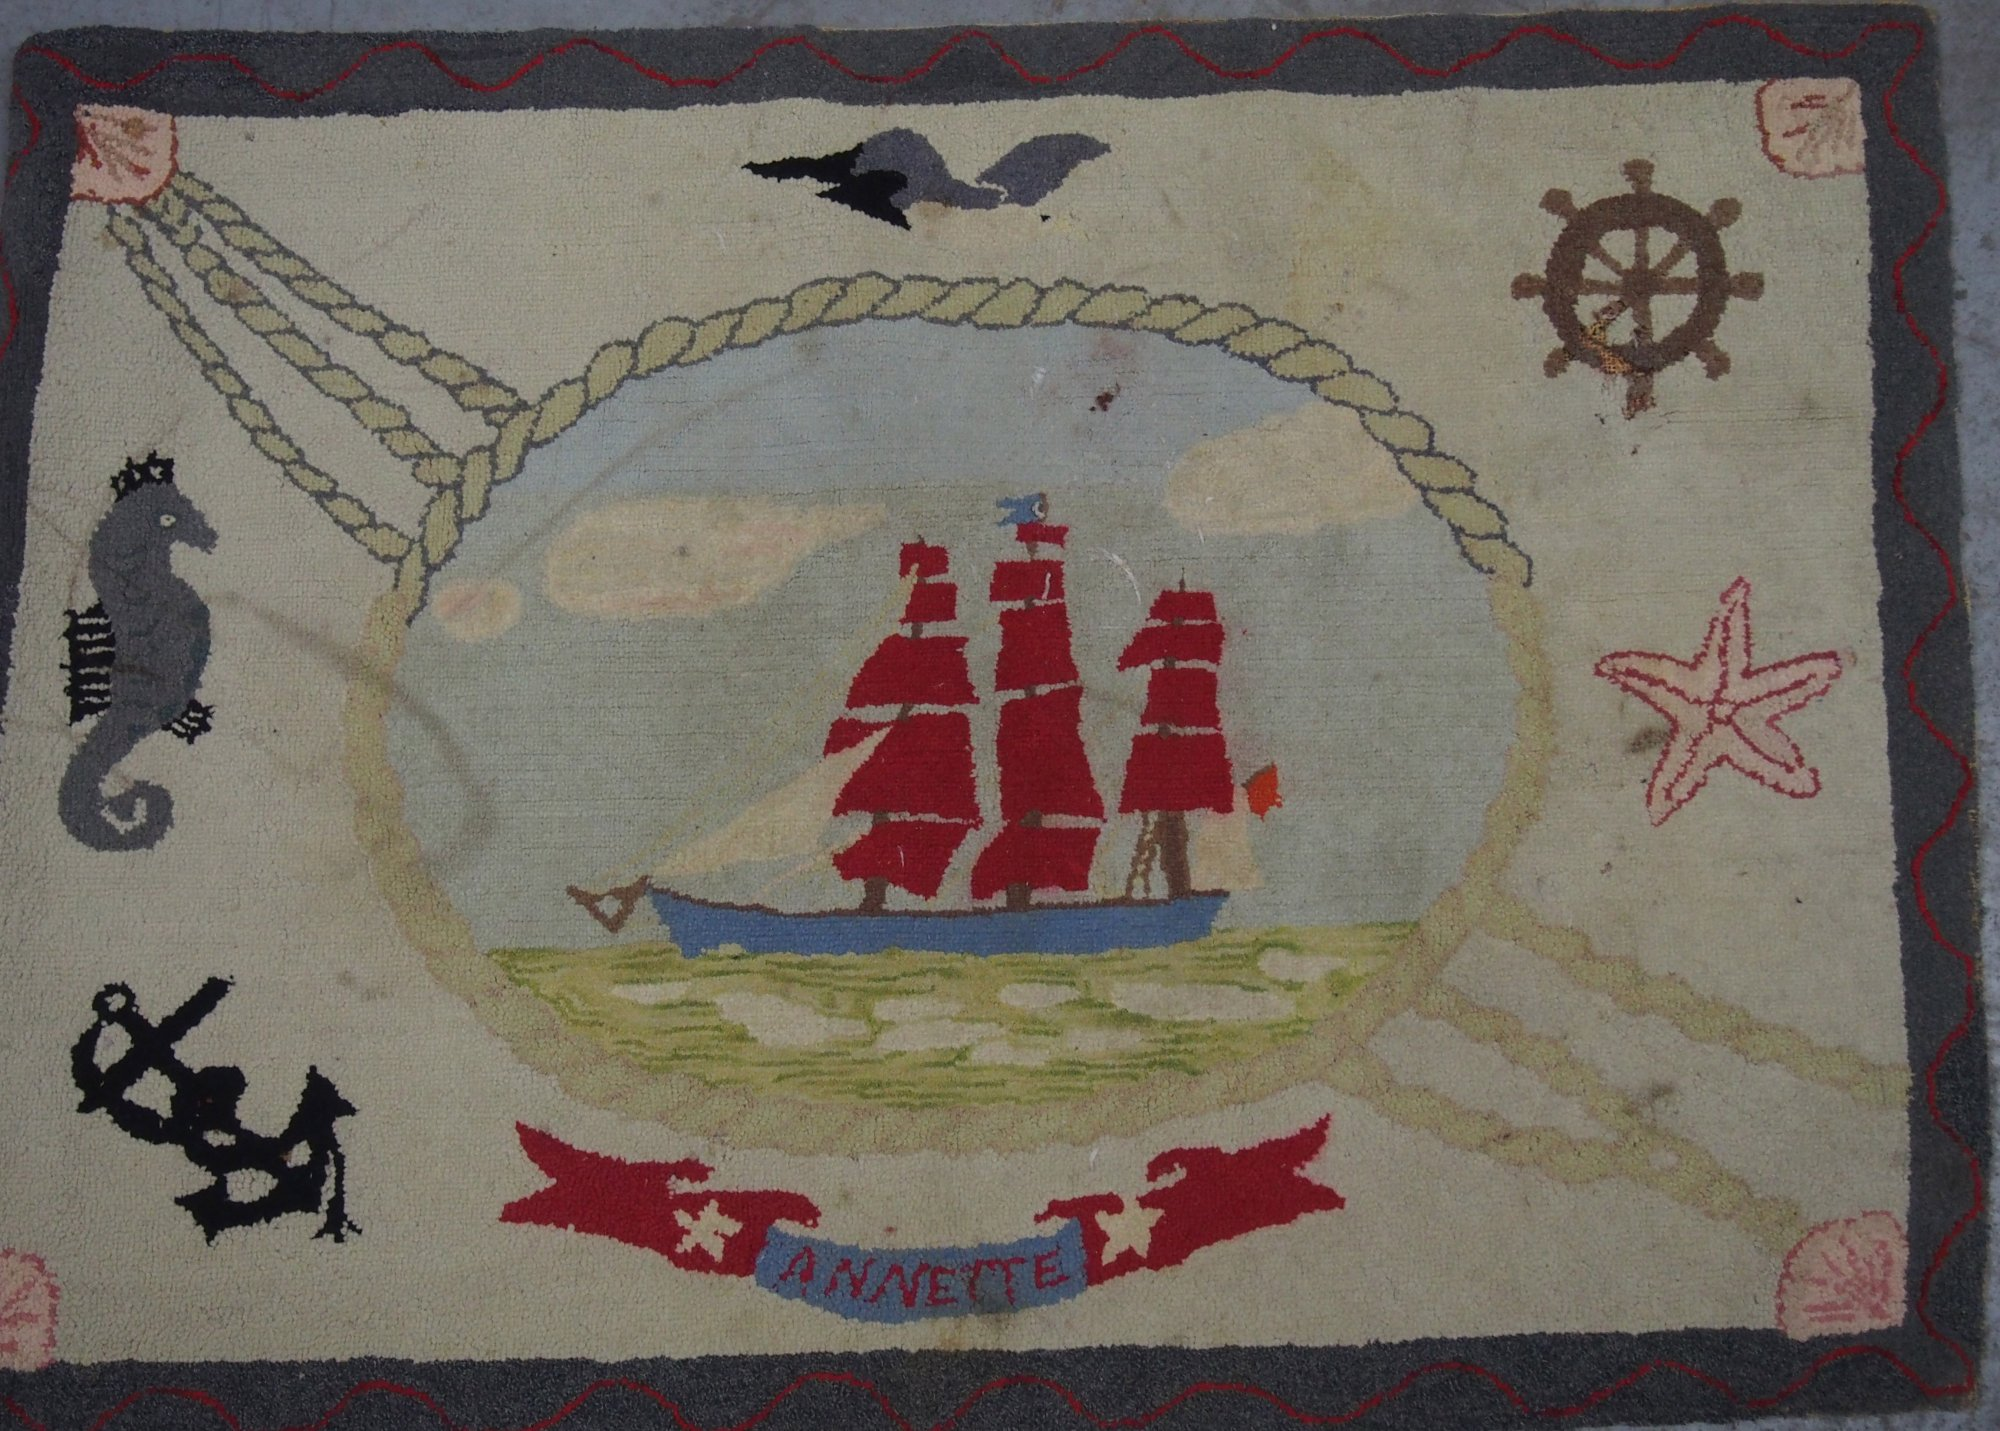 SHIP ANNETTE ANTIQUE HOOKED RUG